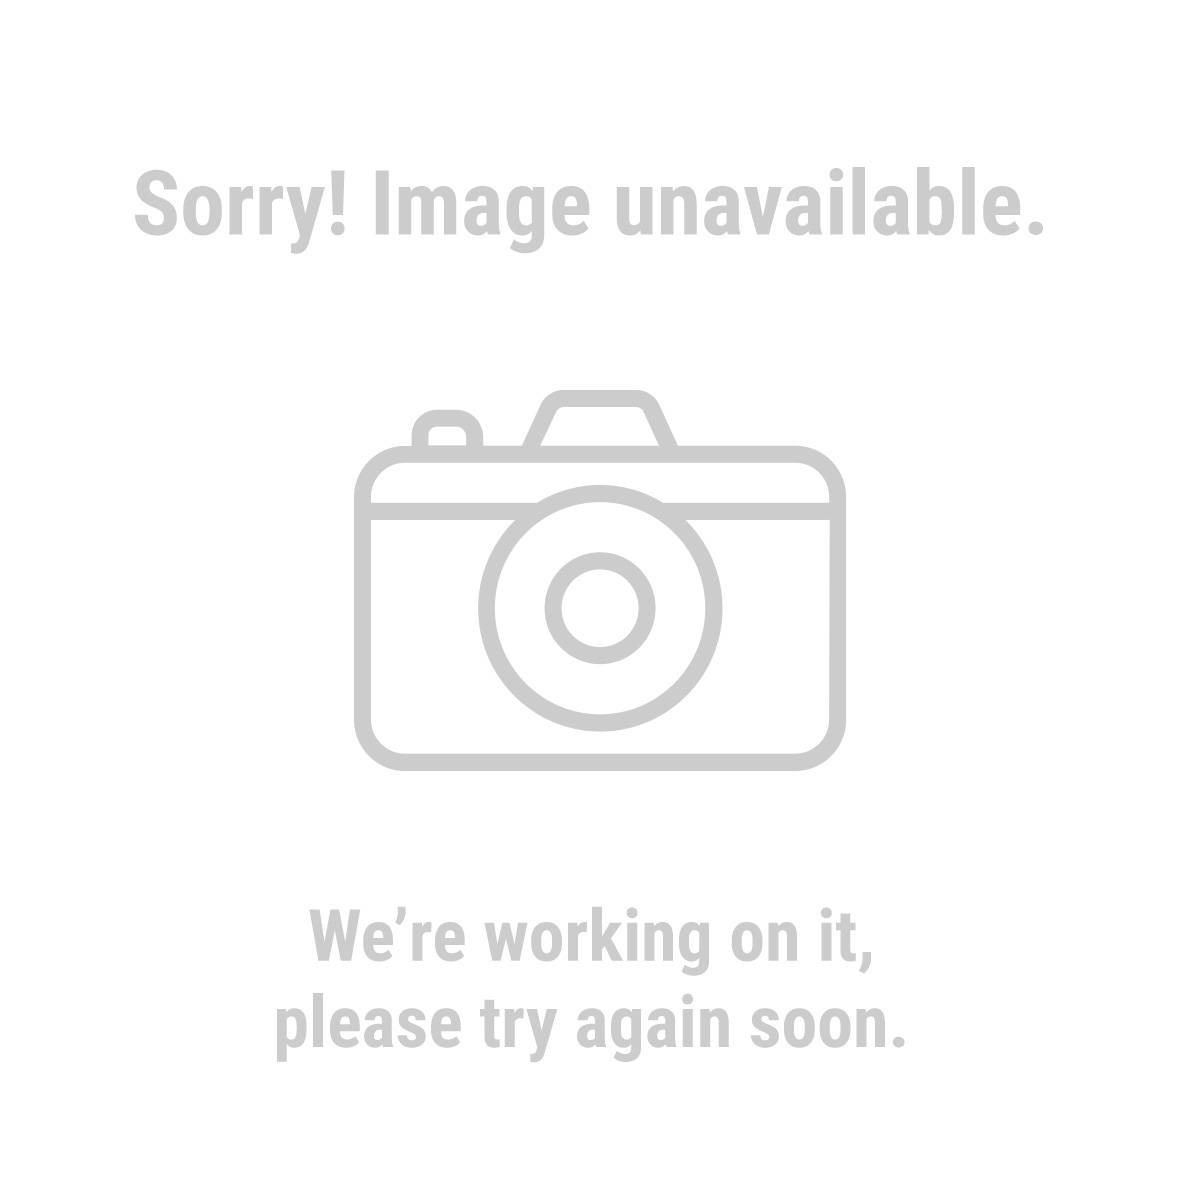 Chicago Electric Power Tools 62419 18 Volt 1/2 in. Cordless Variable Speed Hammer Drill with Keyless Chuck